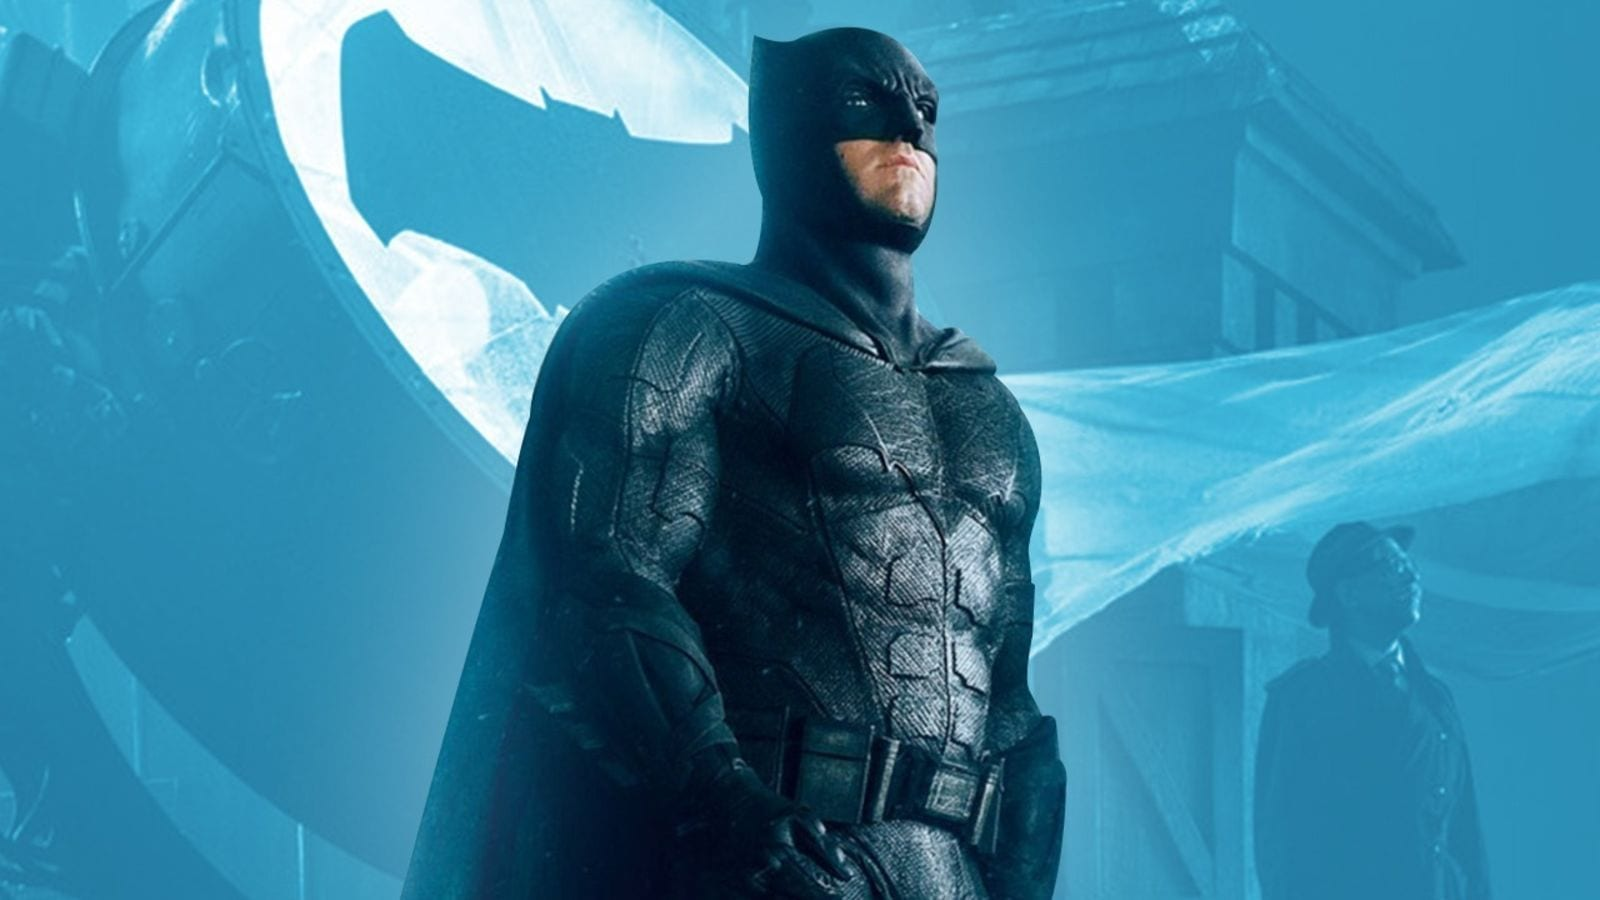 Matt Reeves Reveals The Batman Release Date, Cast & More